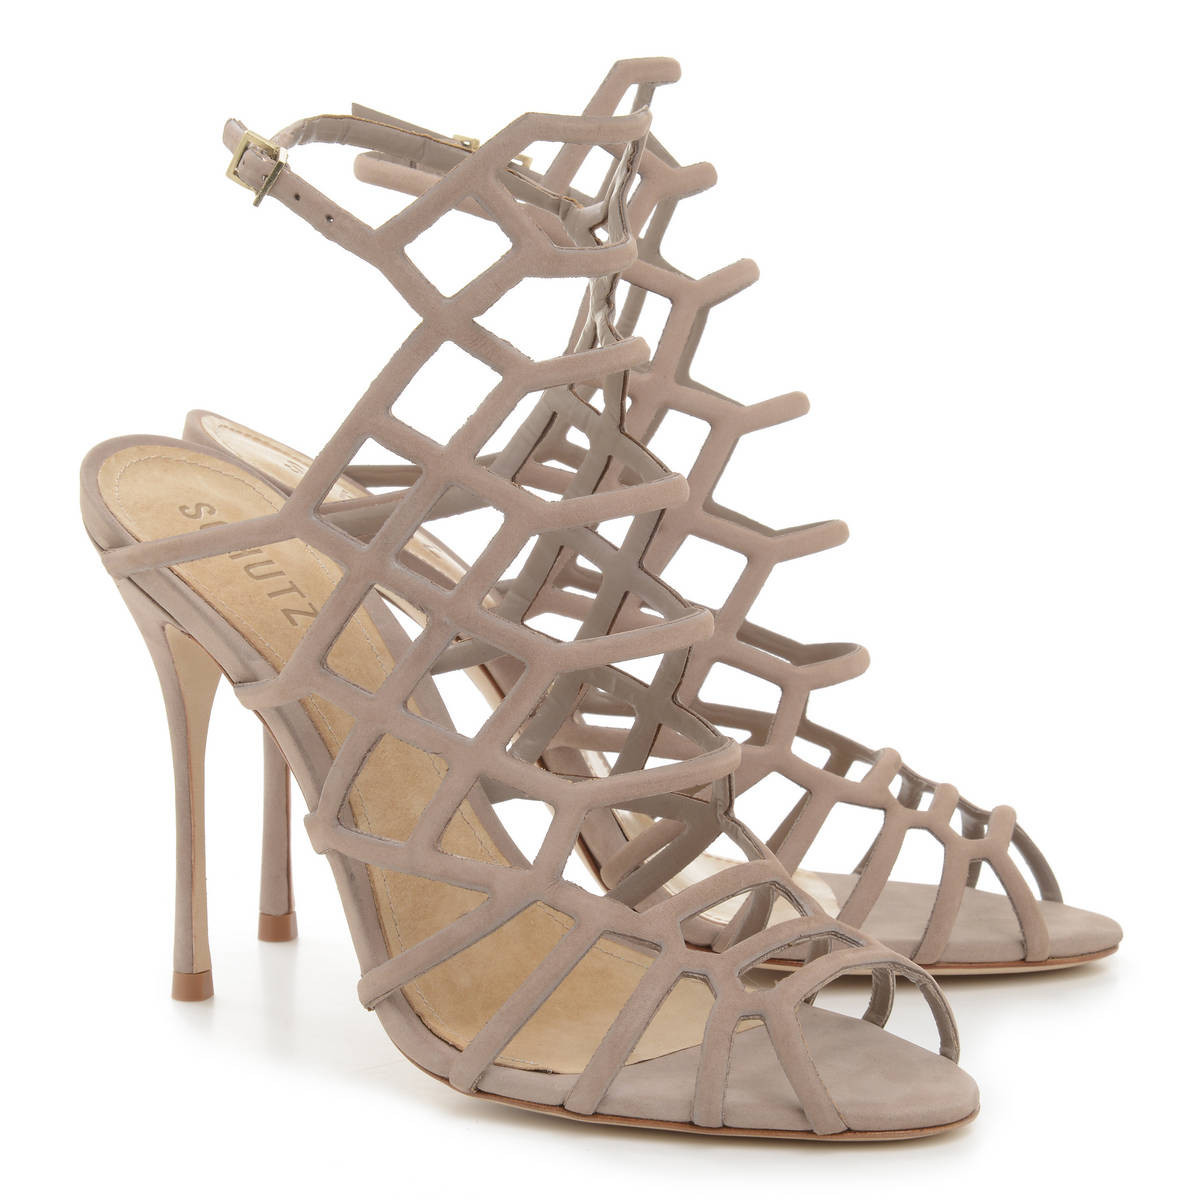 Sandals vs shoes - Real Vs Steal Schutz Juliana Caged Sandals